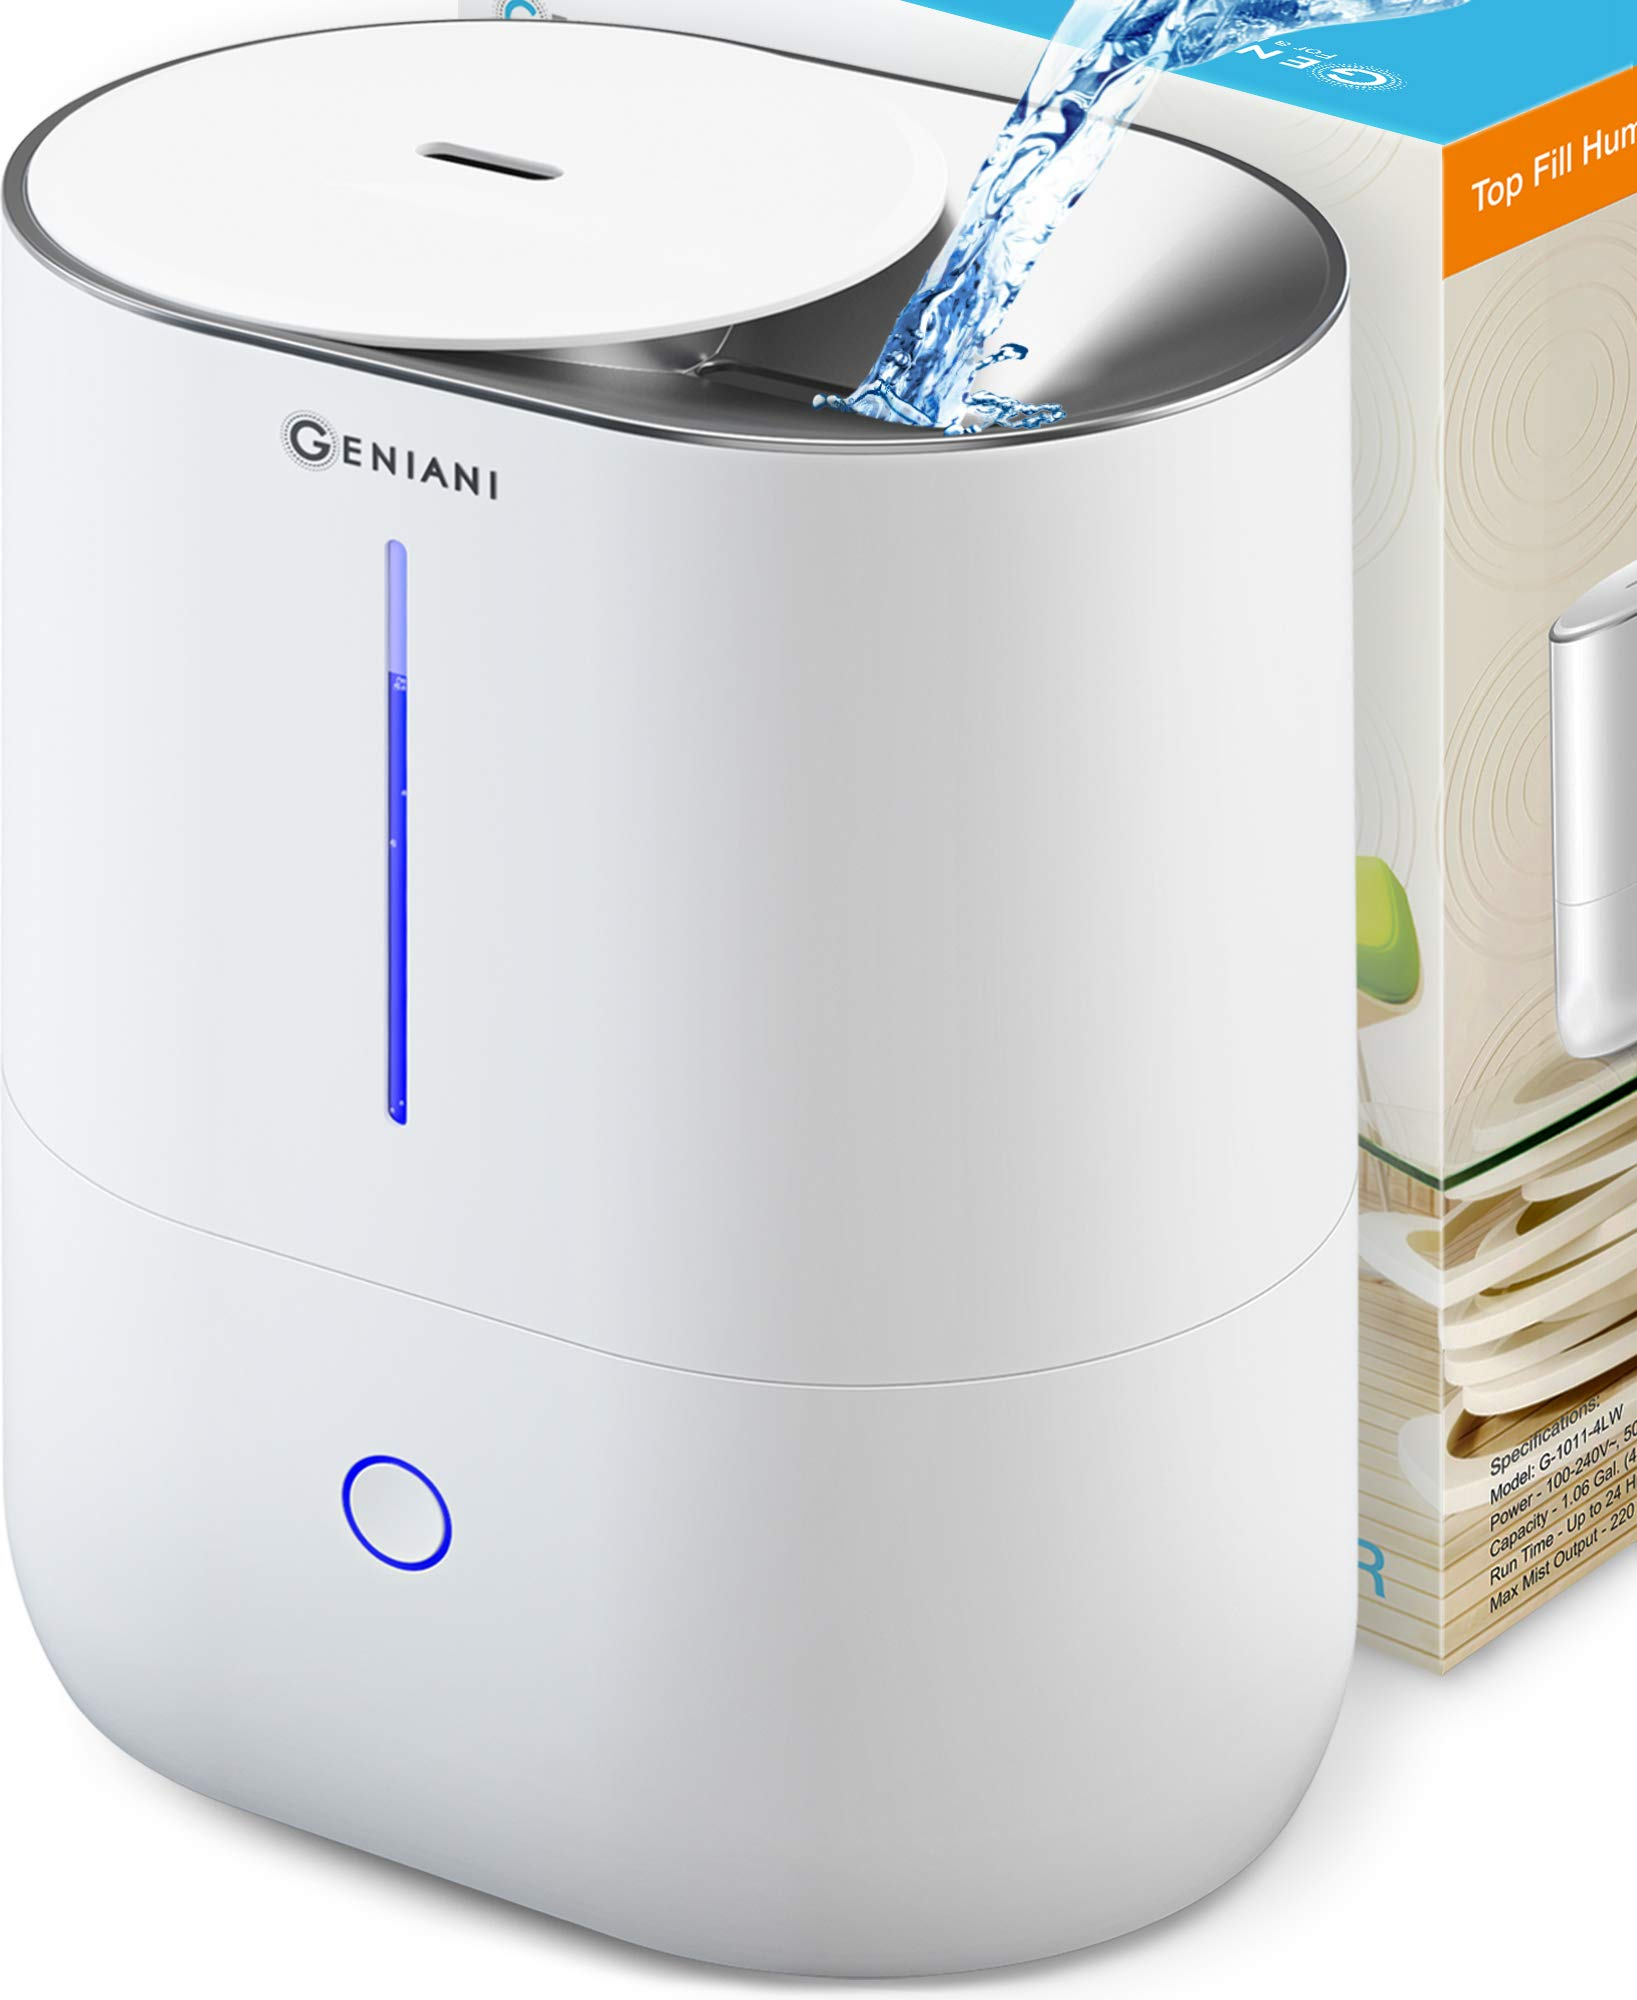 Top Fill Cool Mist Humidifiers for Bedroom & Essential Oil Diffuser - Smart Aroma Ultrasonic Humidifier for Home, Baby, Large Room with Auto Shut Off, 4L Easy to Clean Water Tank - 2 Year Warranty by GENIANI